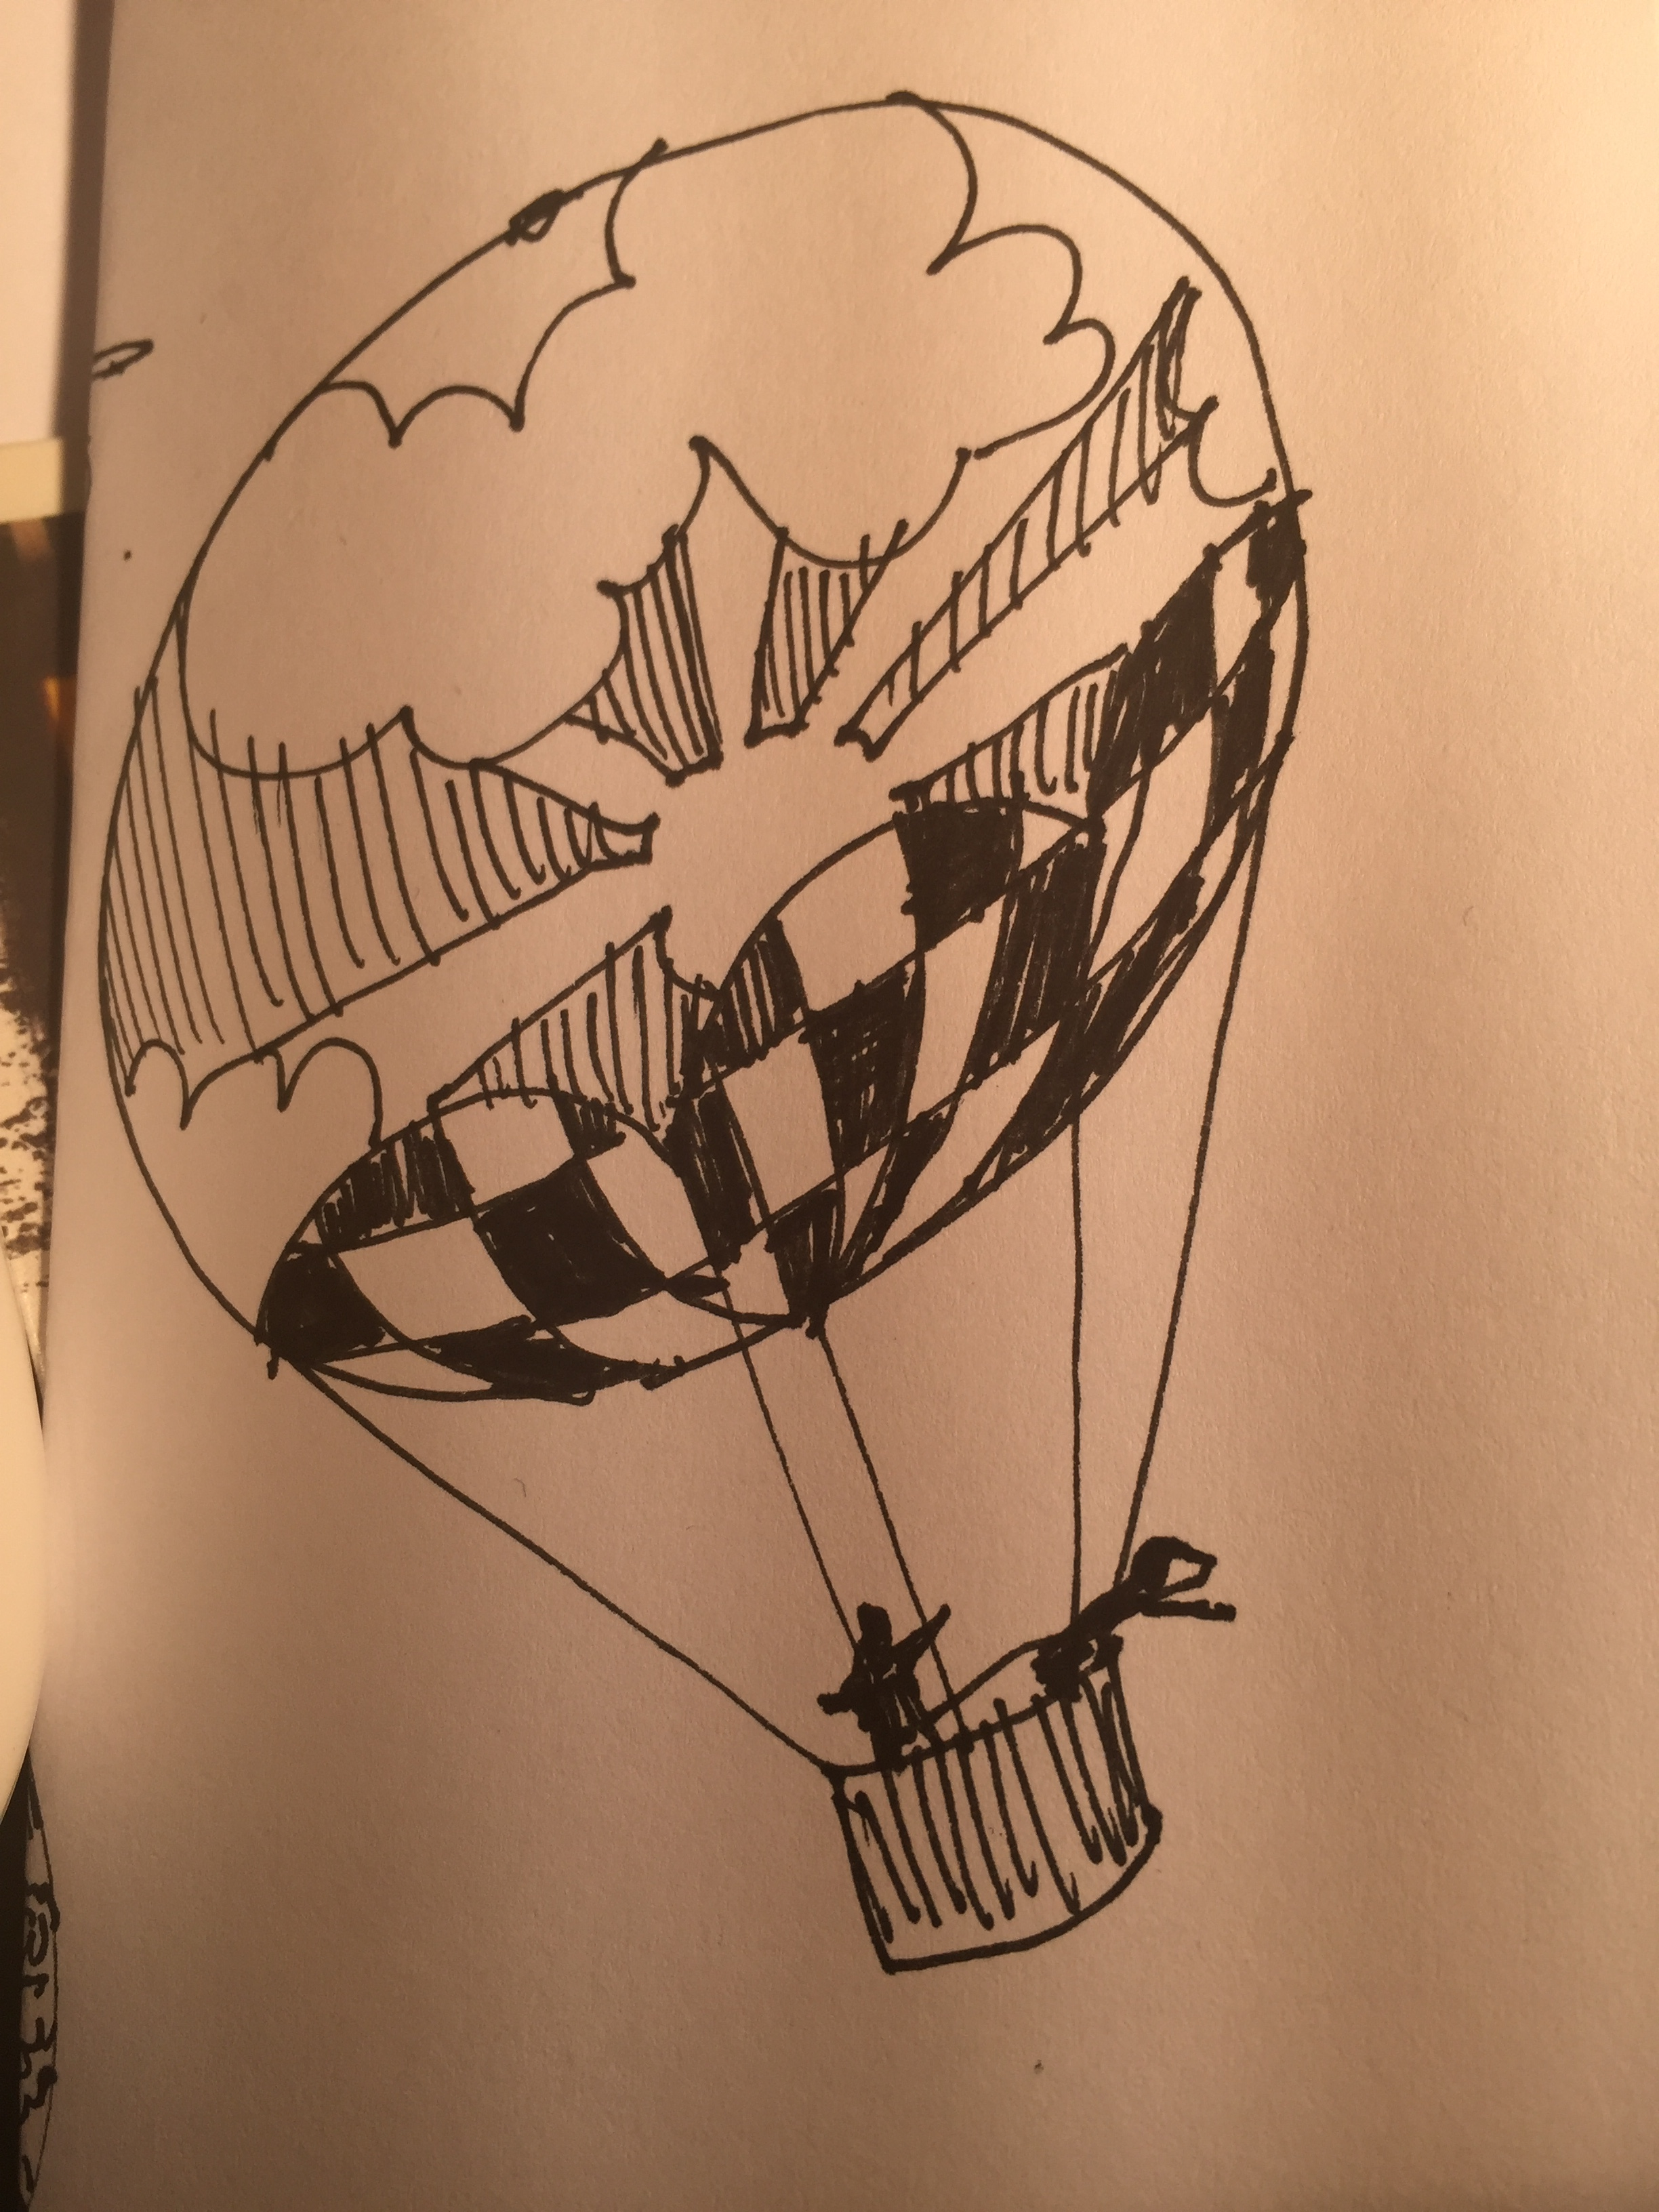 Yet another rougher balloon doodle